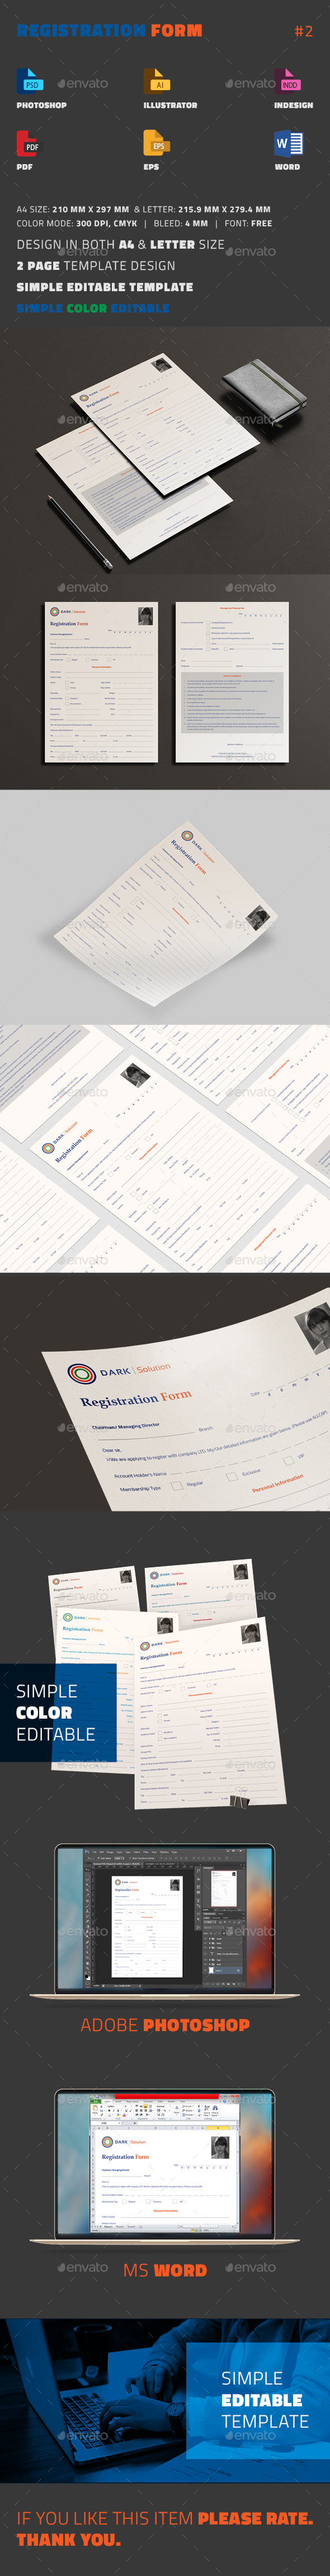 Registration Form by sanlife   GraphicRiver